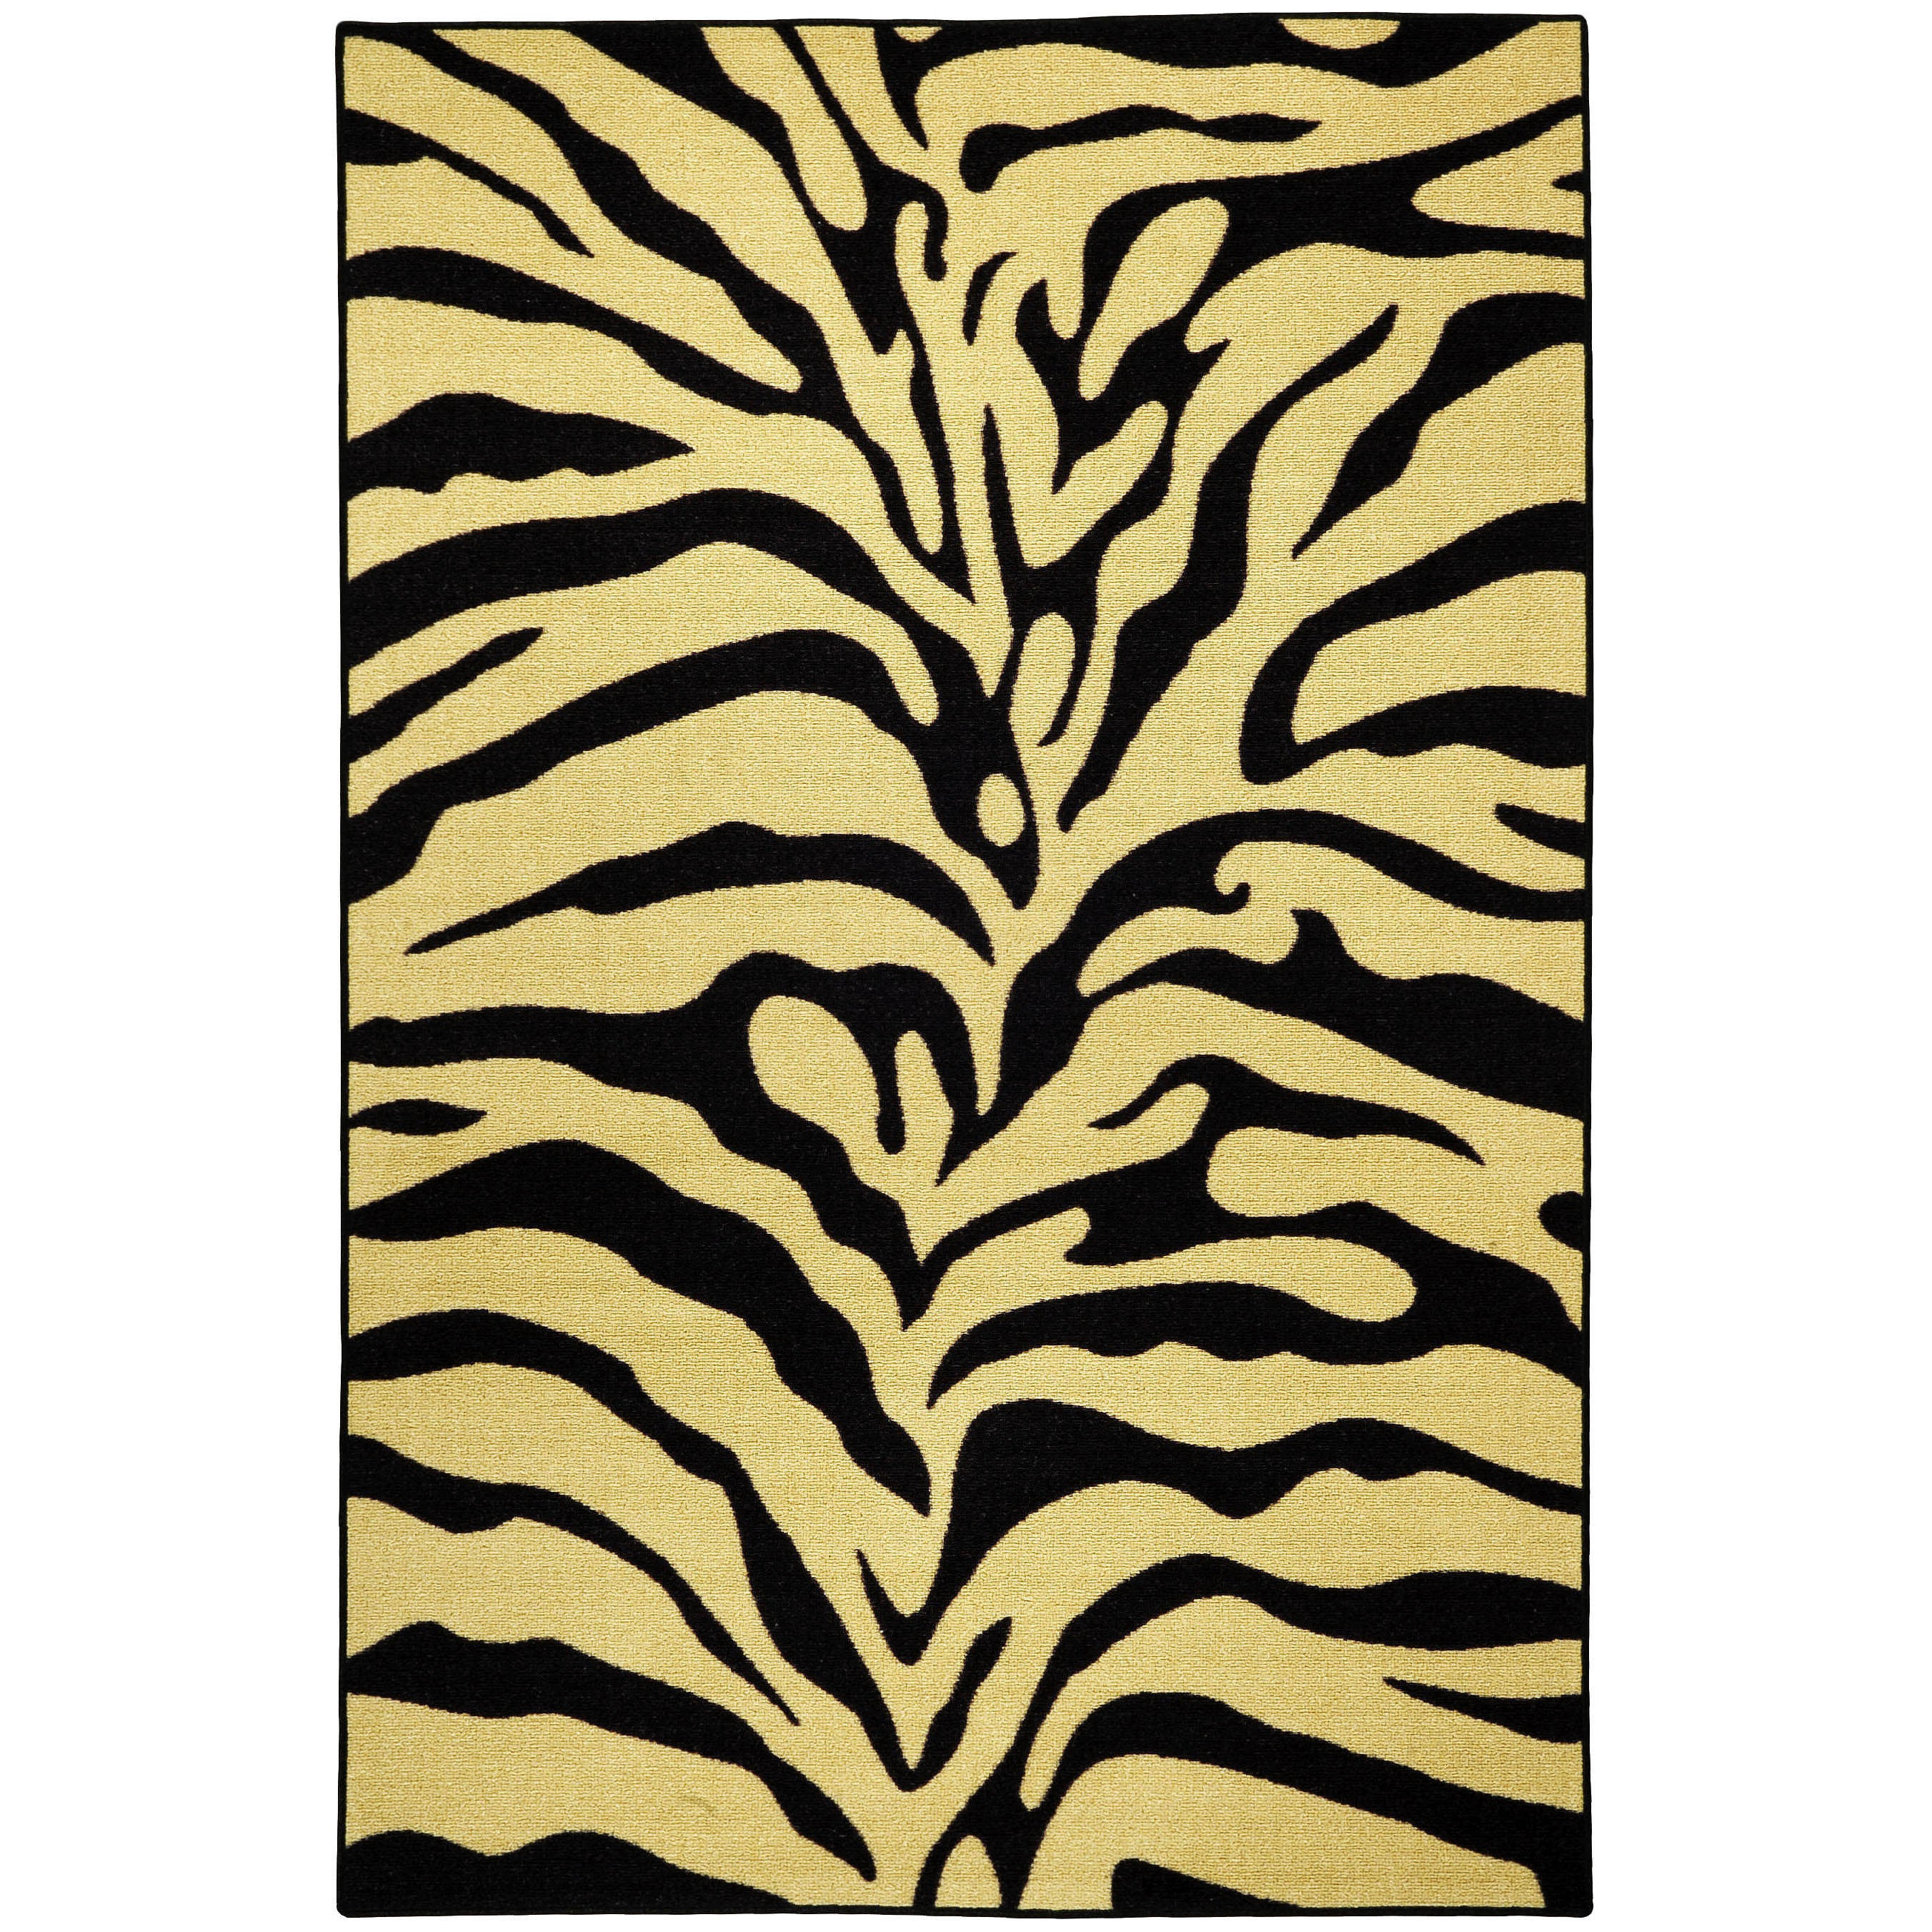 Rubber Back Black and Ivory Tiger Print Non-Skid Area Rug (5' x 6'6) at Sears.com